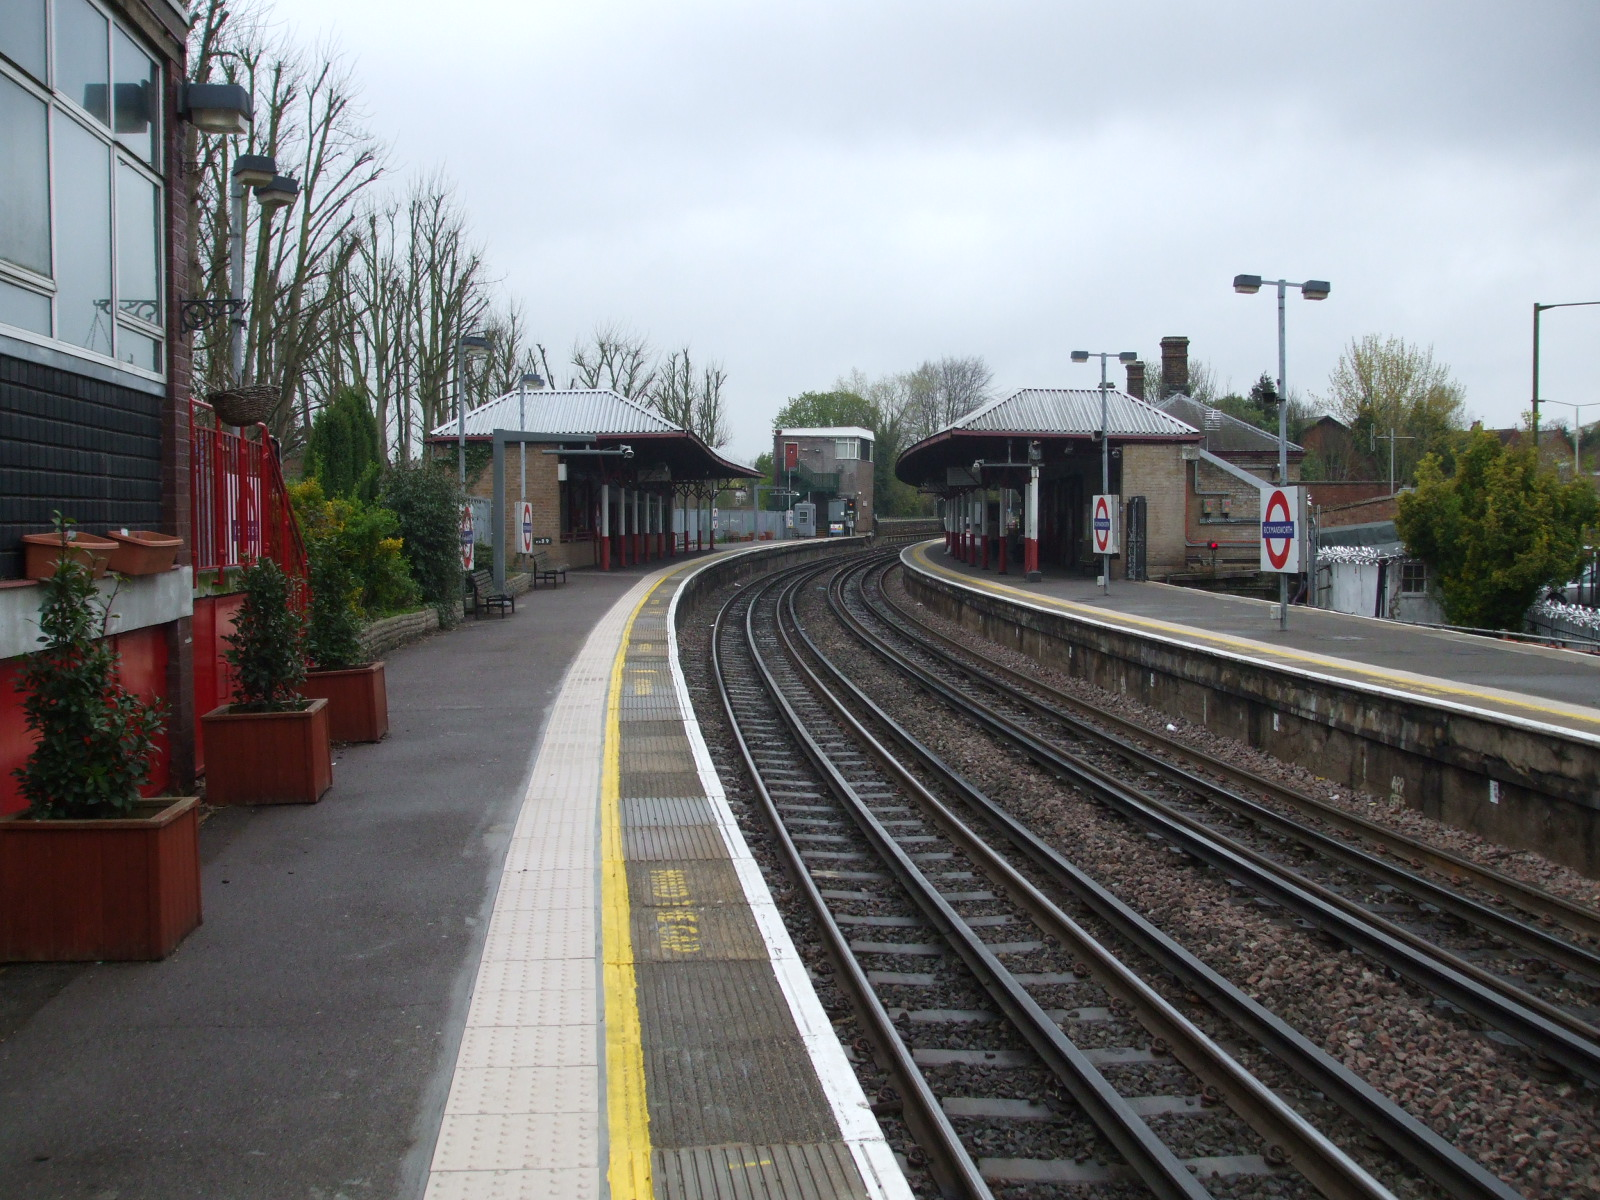 File:Rickmansworth station look north.JPG